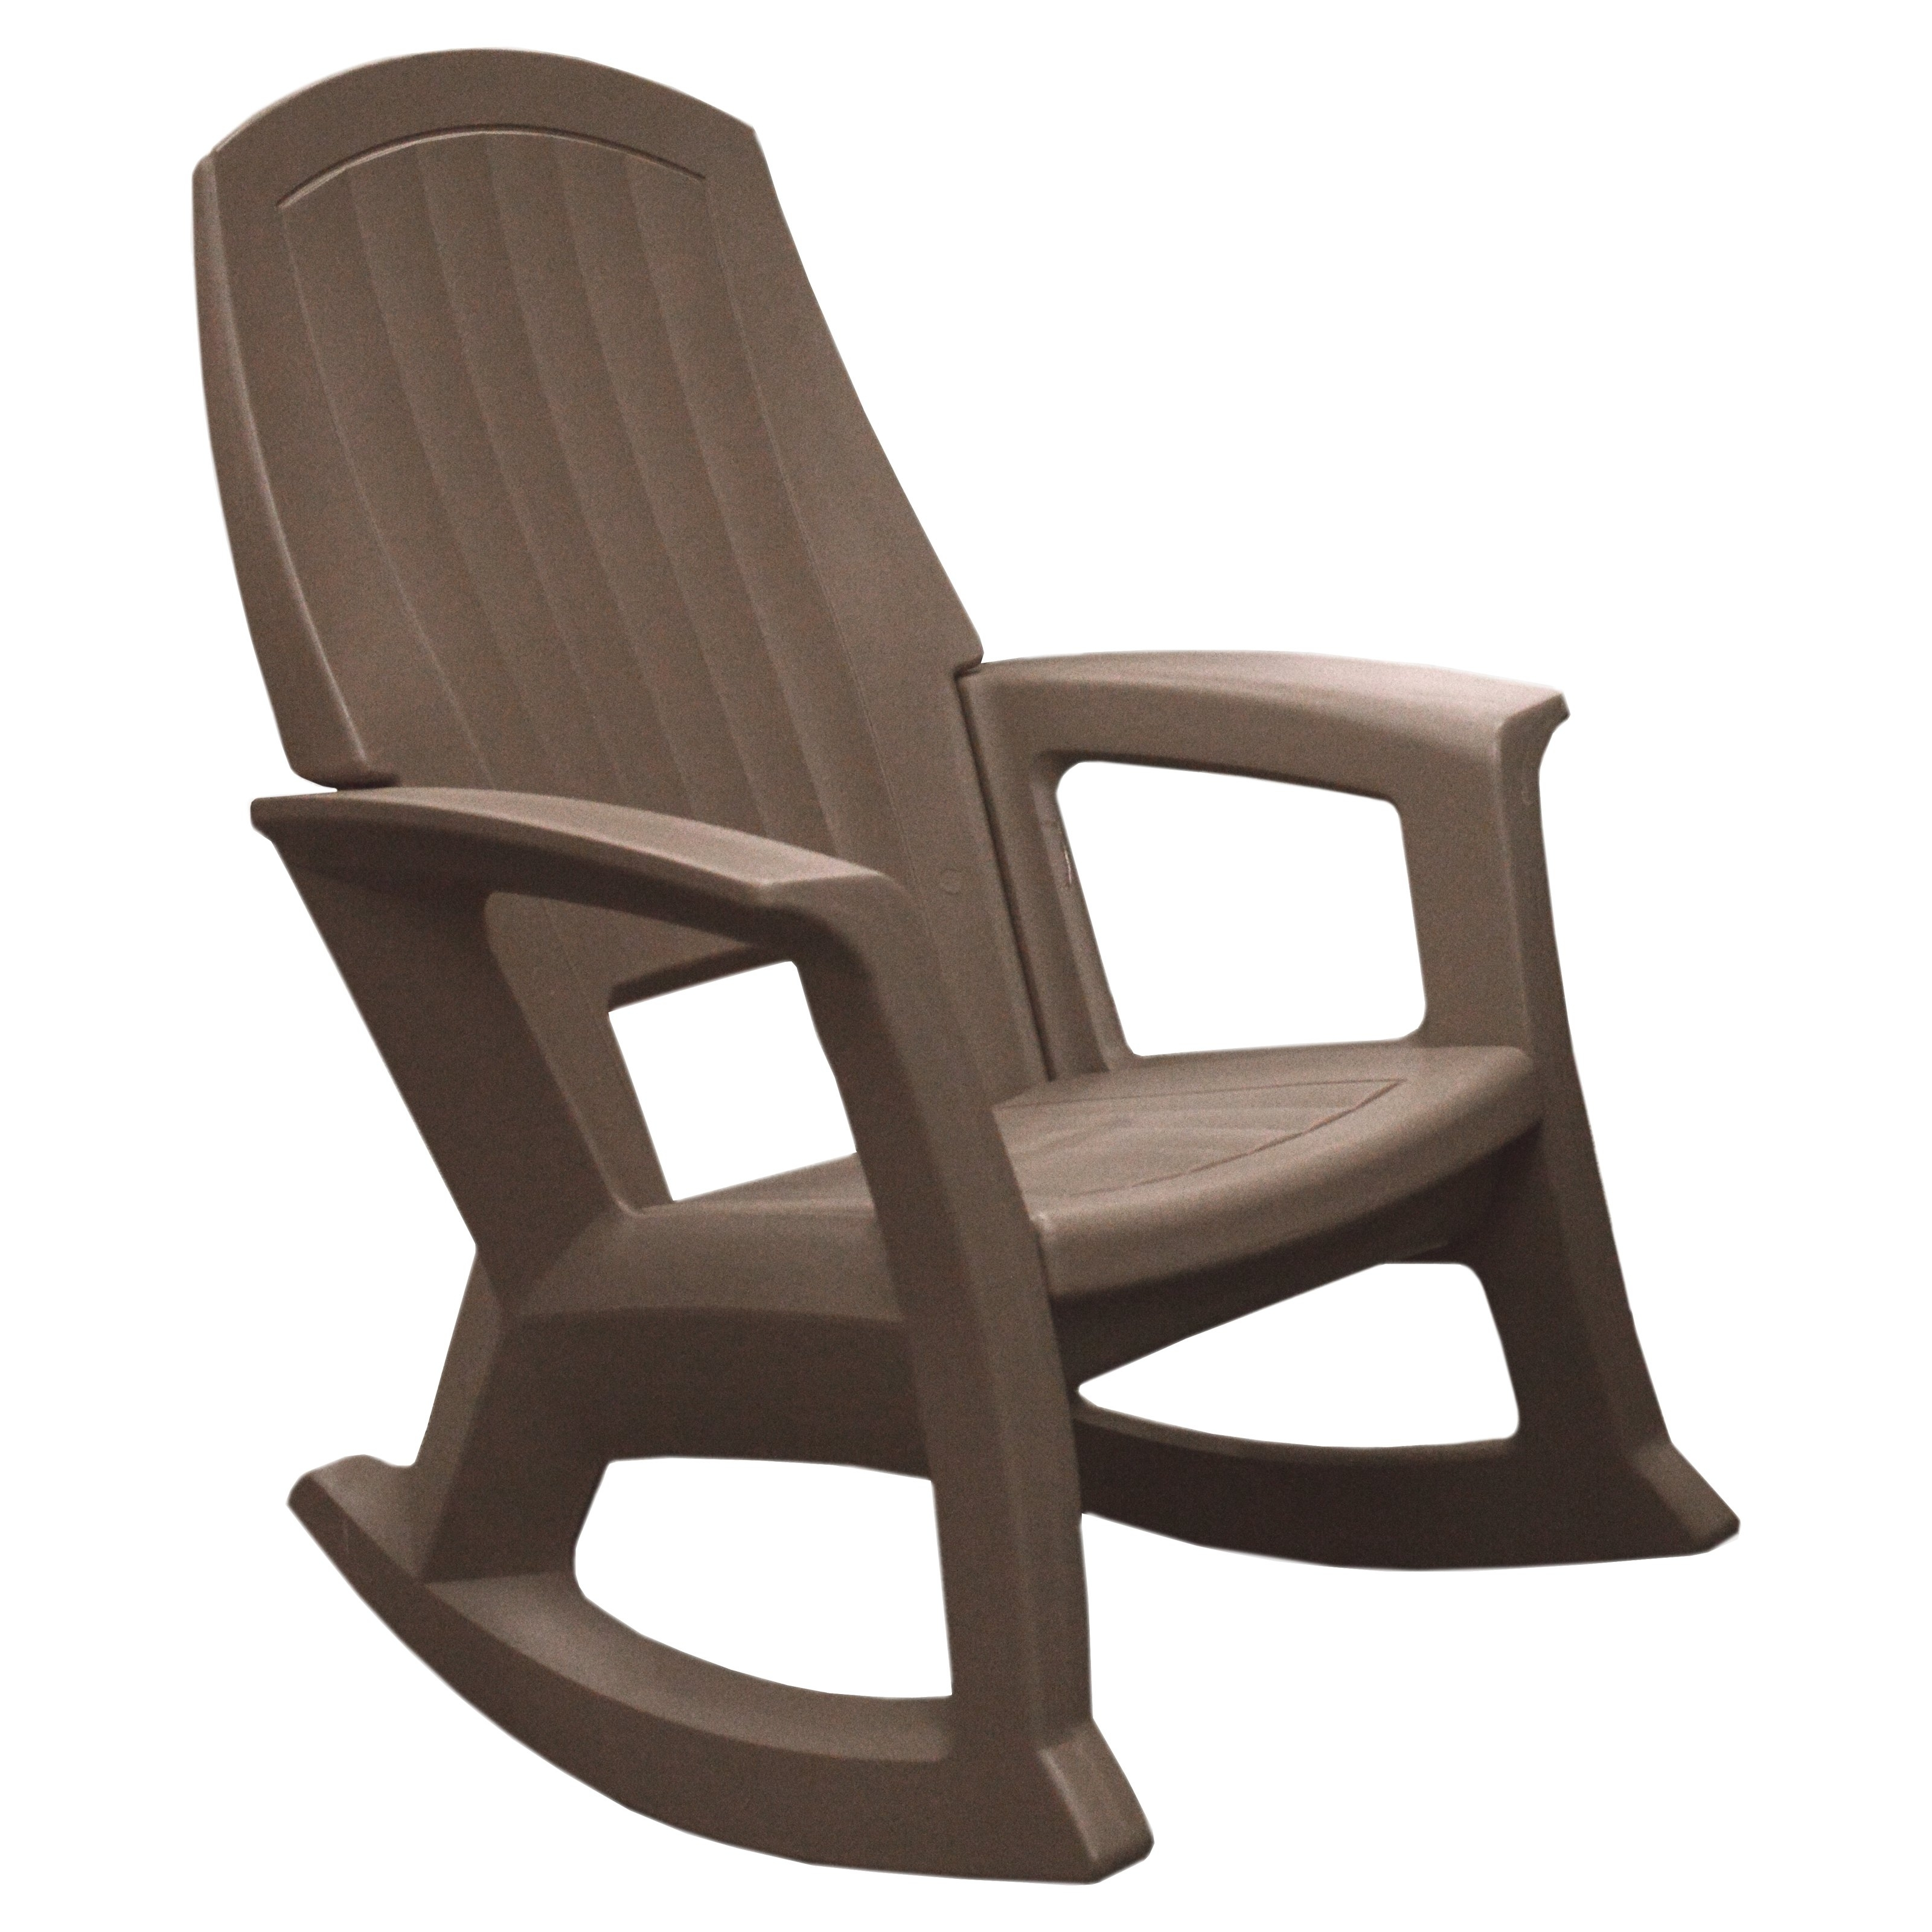 Stackable Patio Rocking Chairs Intended For Current Semco Recycled Plastic Rocking Chair Options Taupe Ikea White Glider (View 13 of 15)